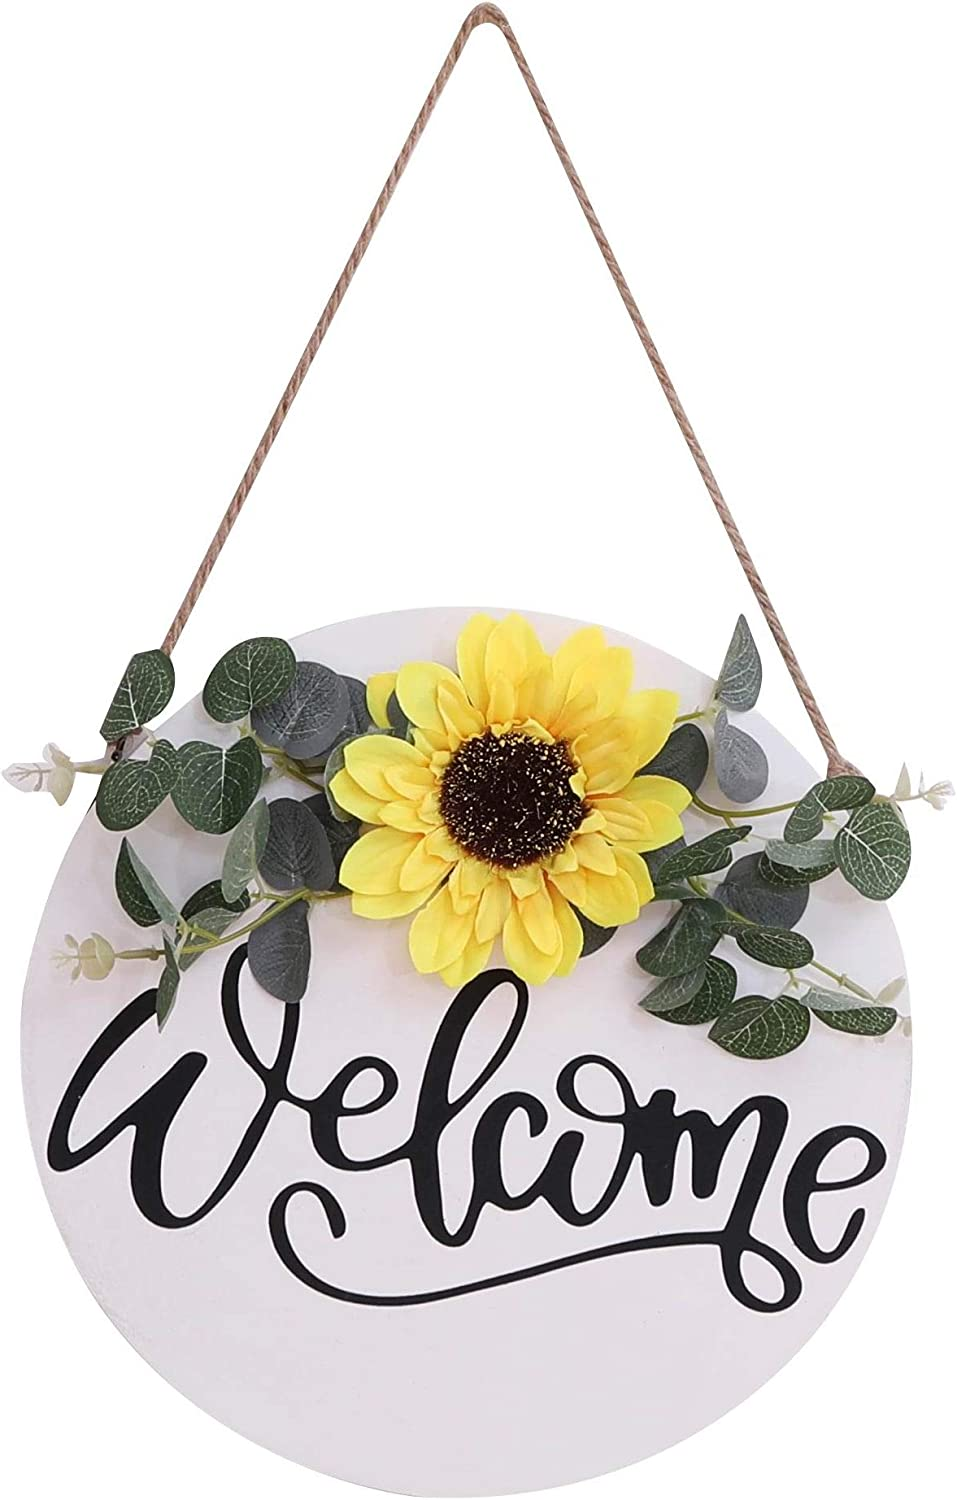 Welcome Sign Solid Wood For Front Porch Wall Decor With String Rustic Farmhouse Hanging Wooden Sign For Outdoor, Entryway, Front Door Decor